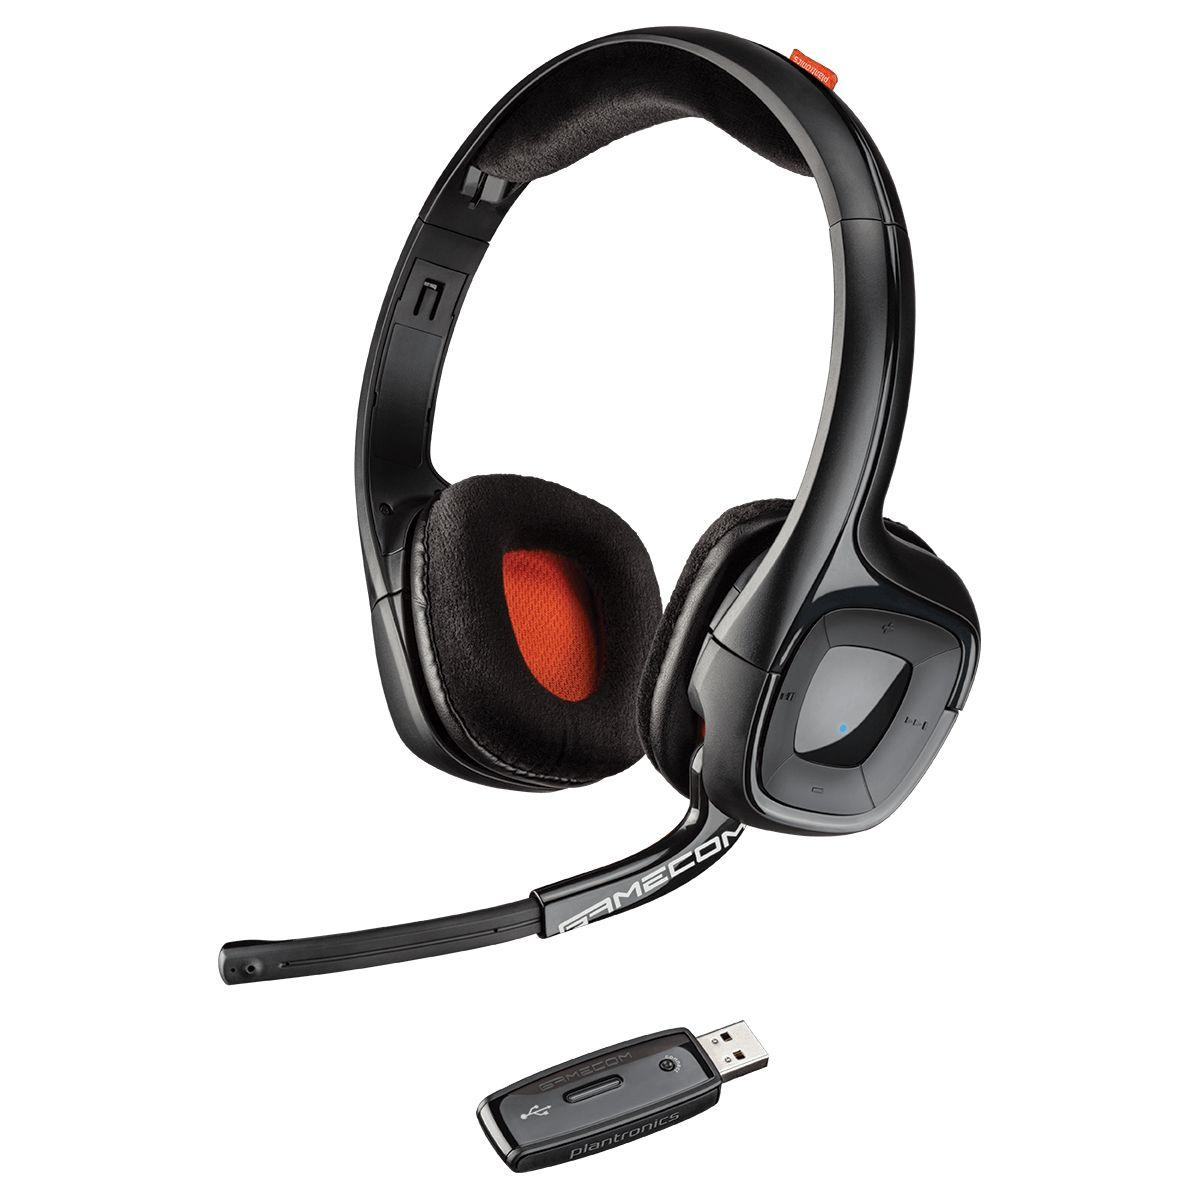 Casque micro pro plantronics gamecom 818 - 5% de remise : code multi5 (photo)